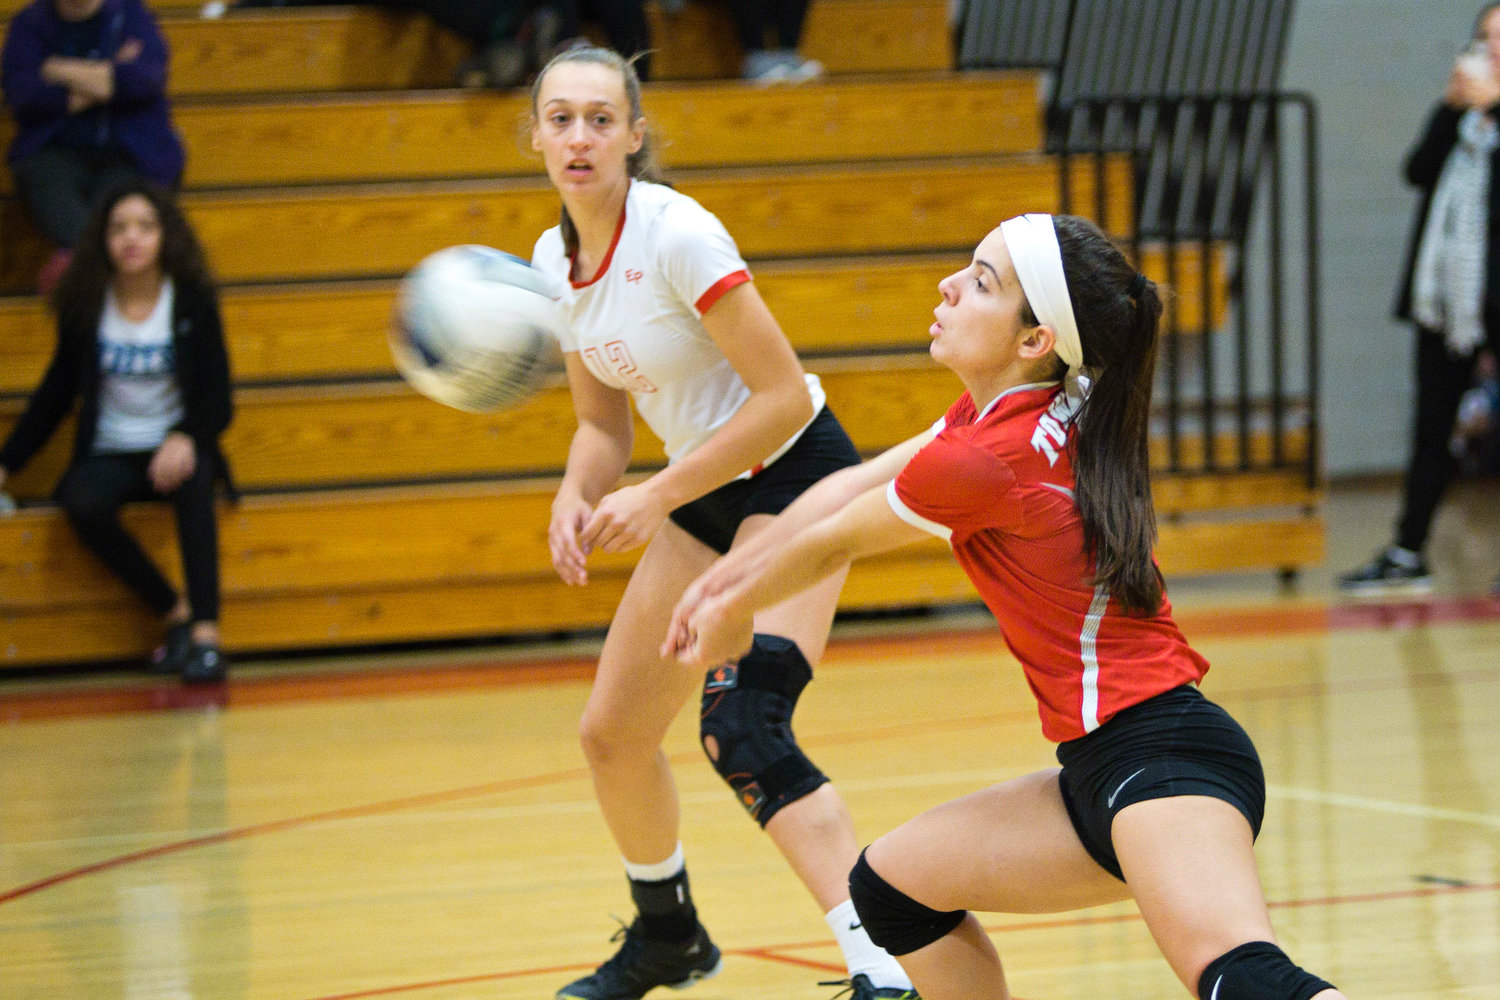 East Providence High School's Kylie Bahry receives a serve from a Cranston West opponent during the teams' Division I girls' volleyball match played in city earlier this week. Visit eastbayri.com to view more photos from the match.